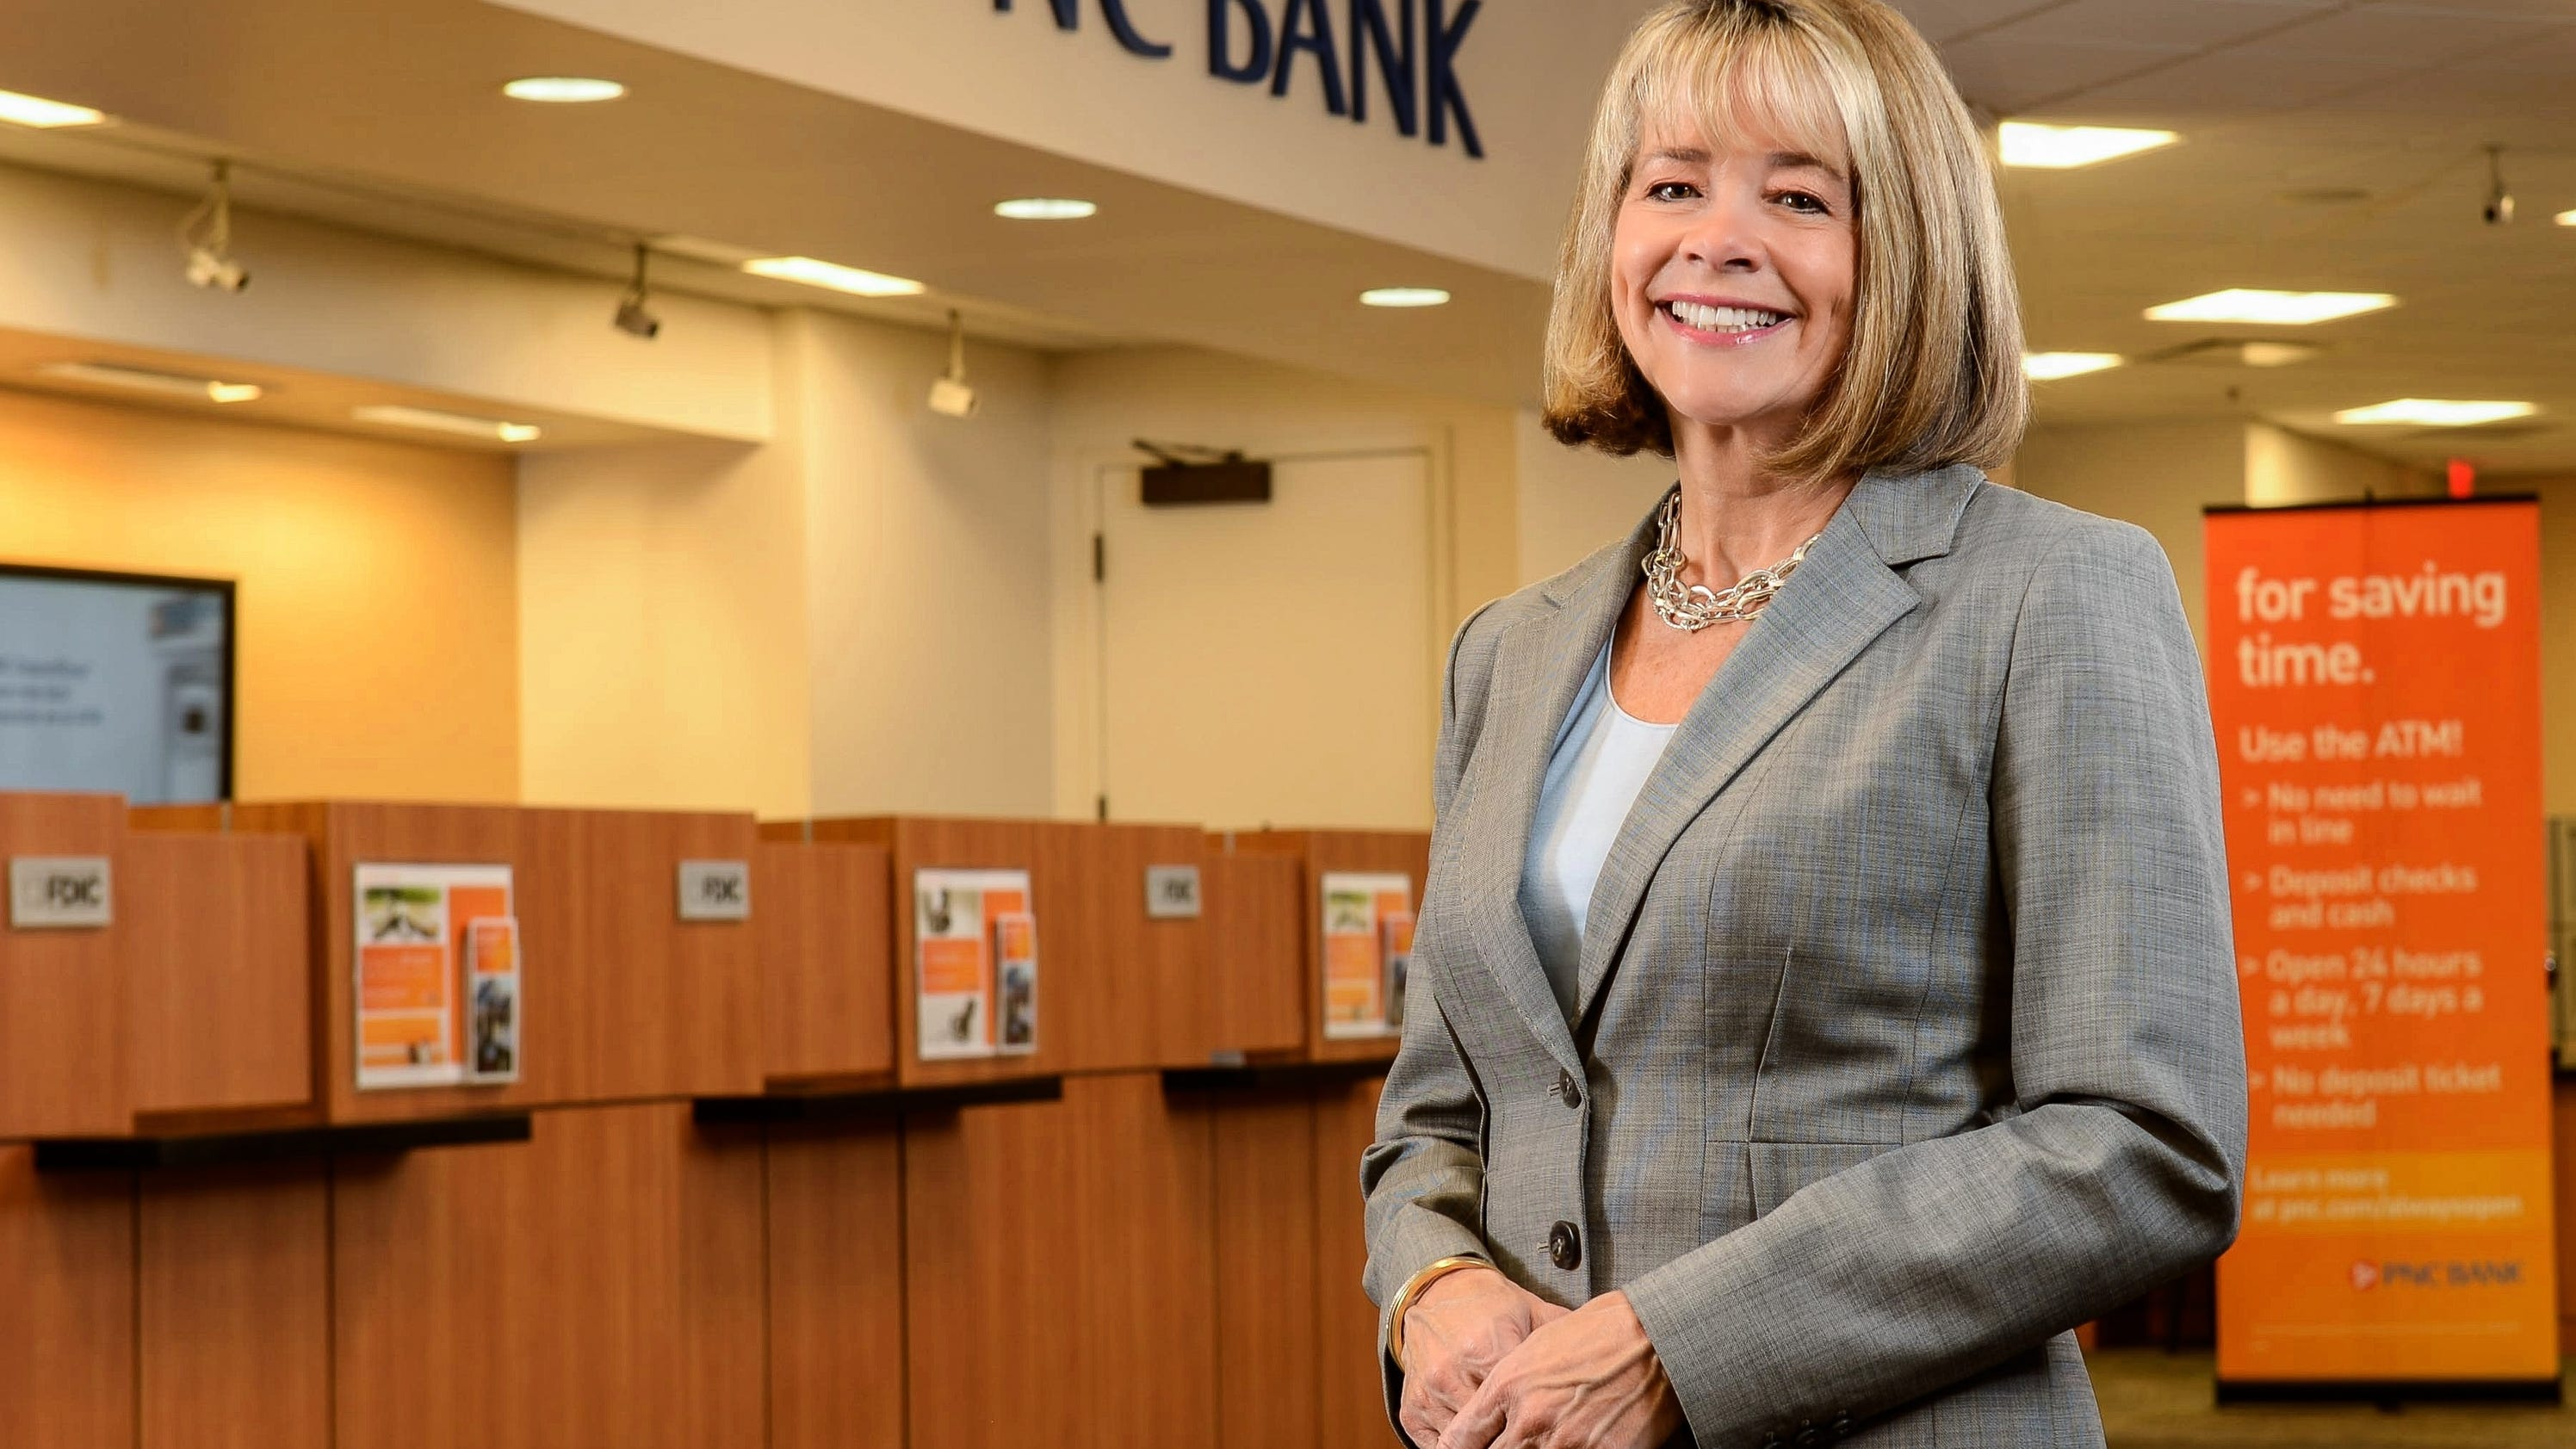 questions pnc exec boosts early childhood education